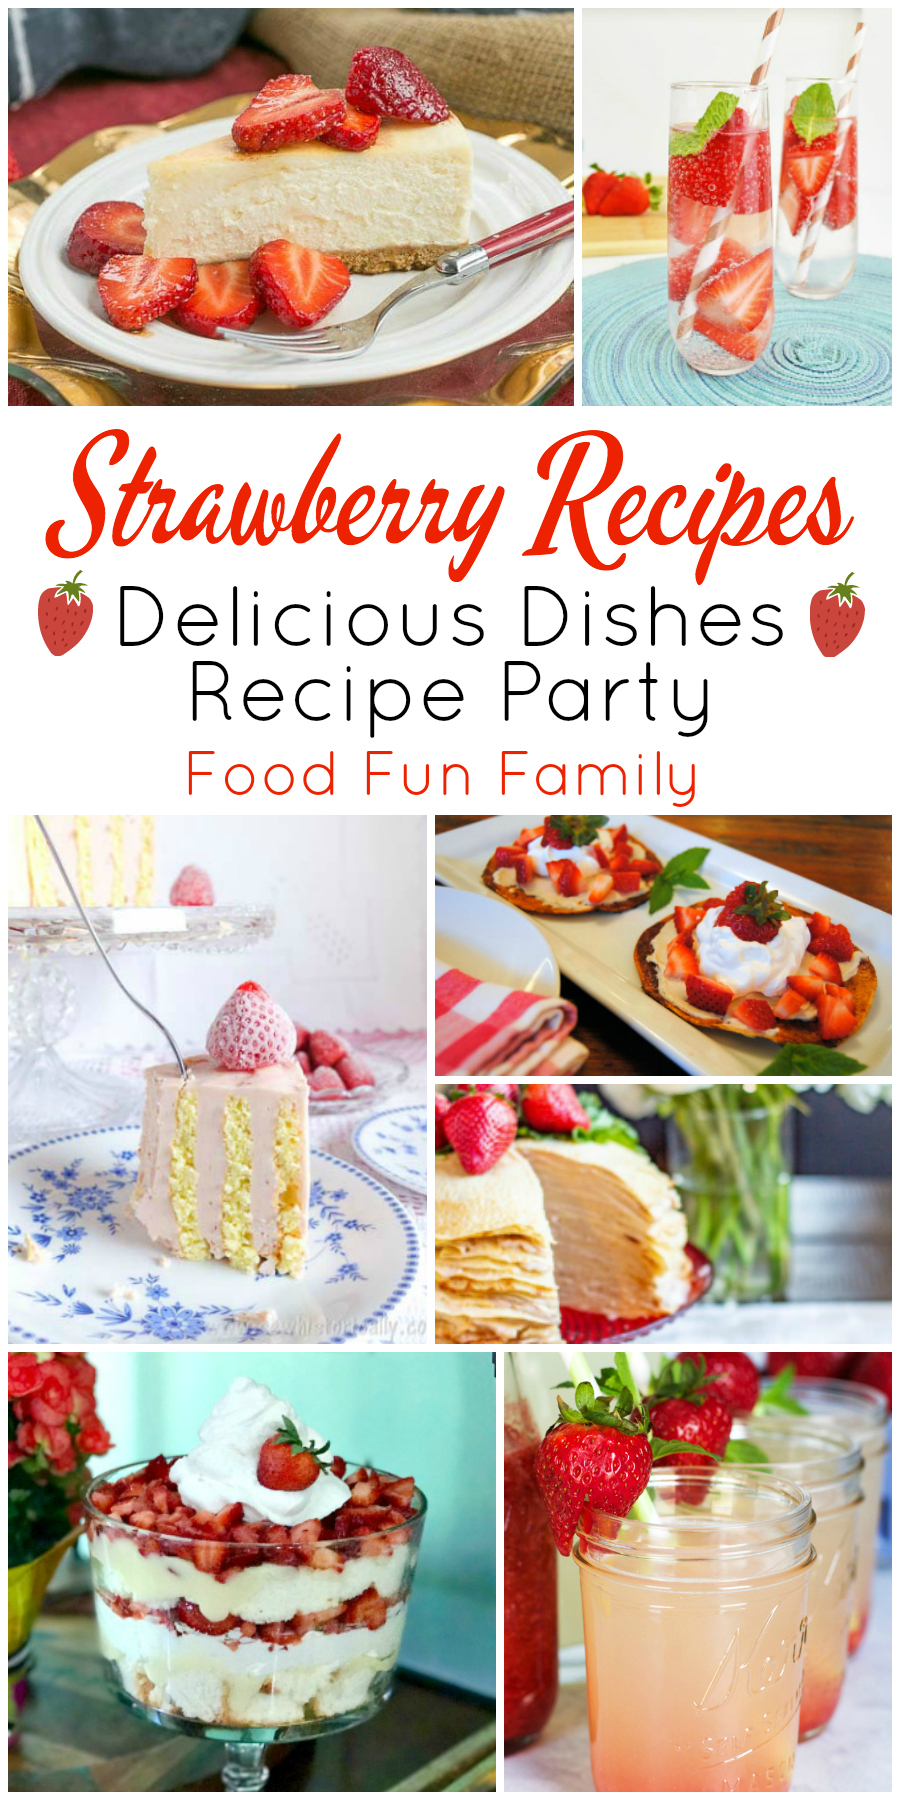 Tasty strawberry recipes - a Delicious Dishes Recipe Party collection with Food Fun Family